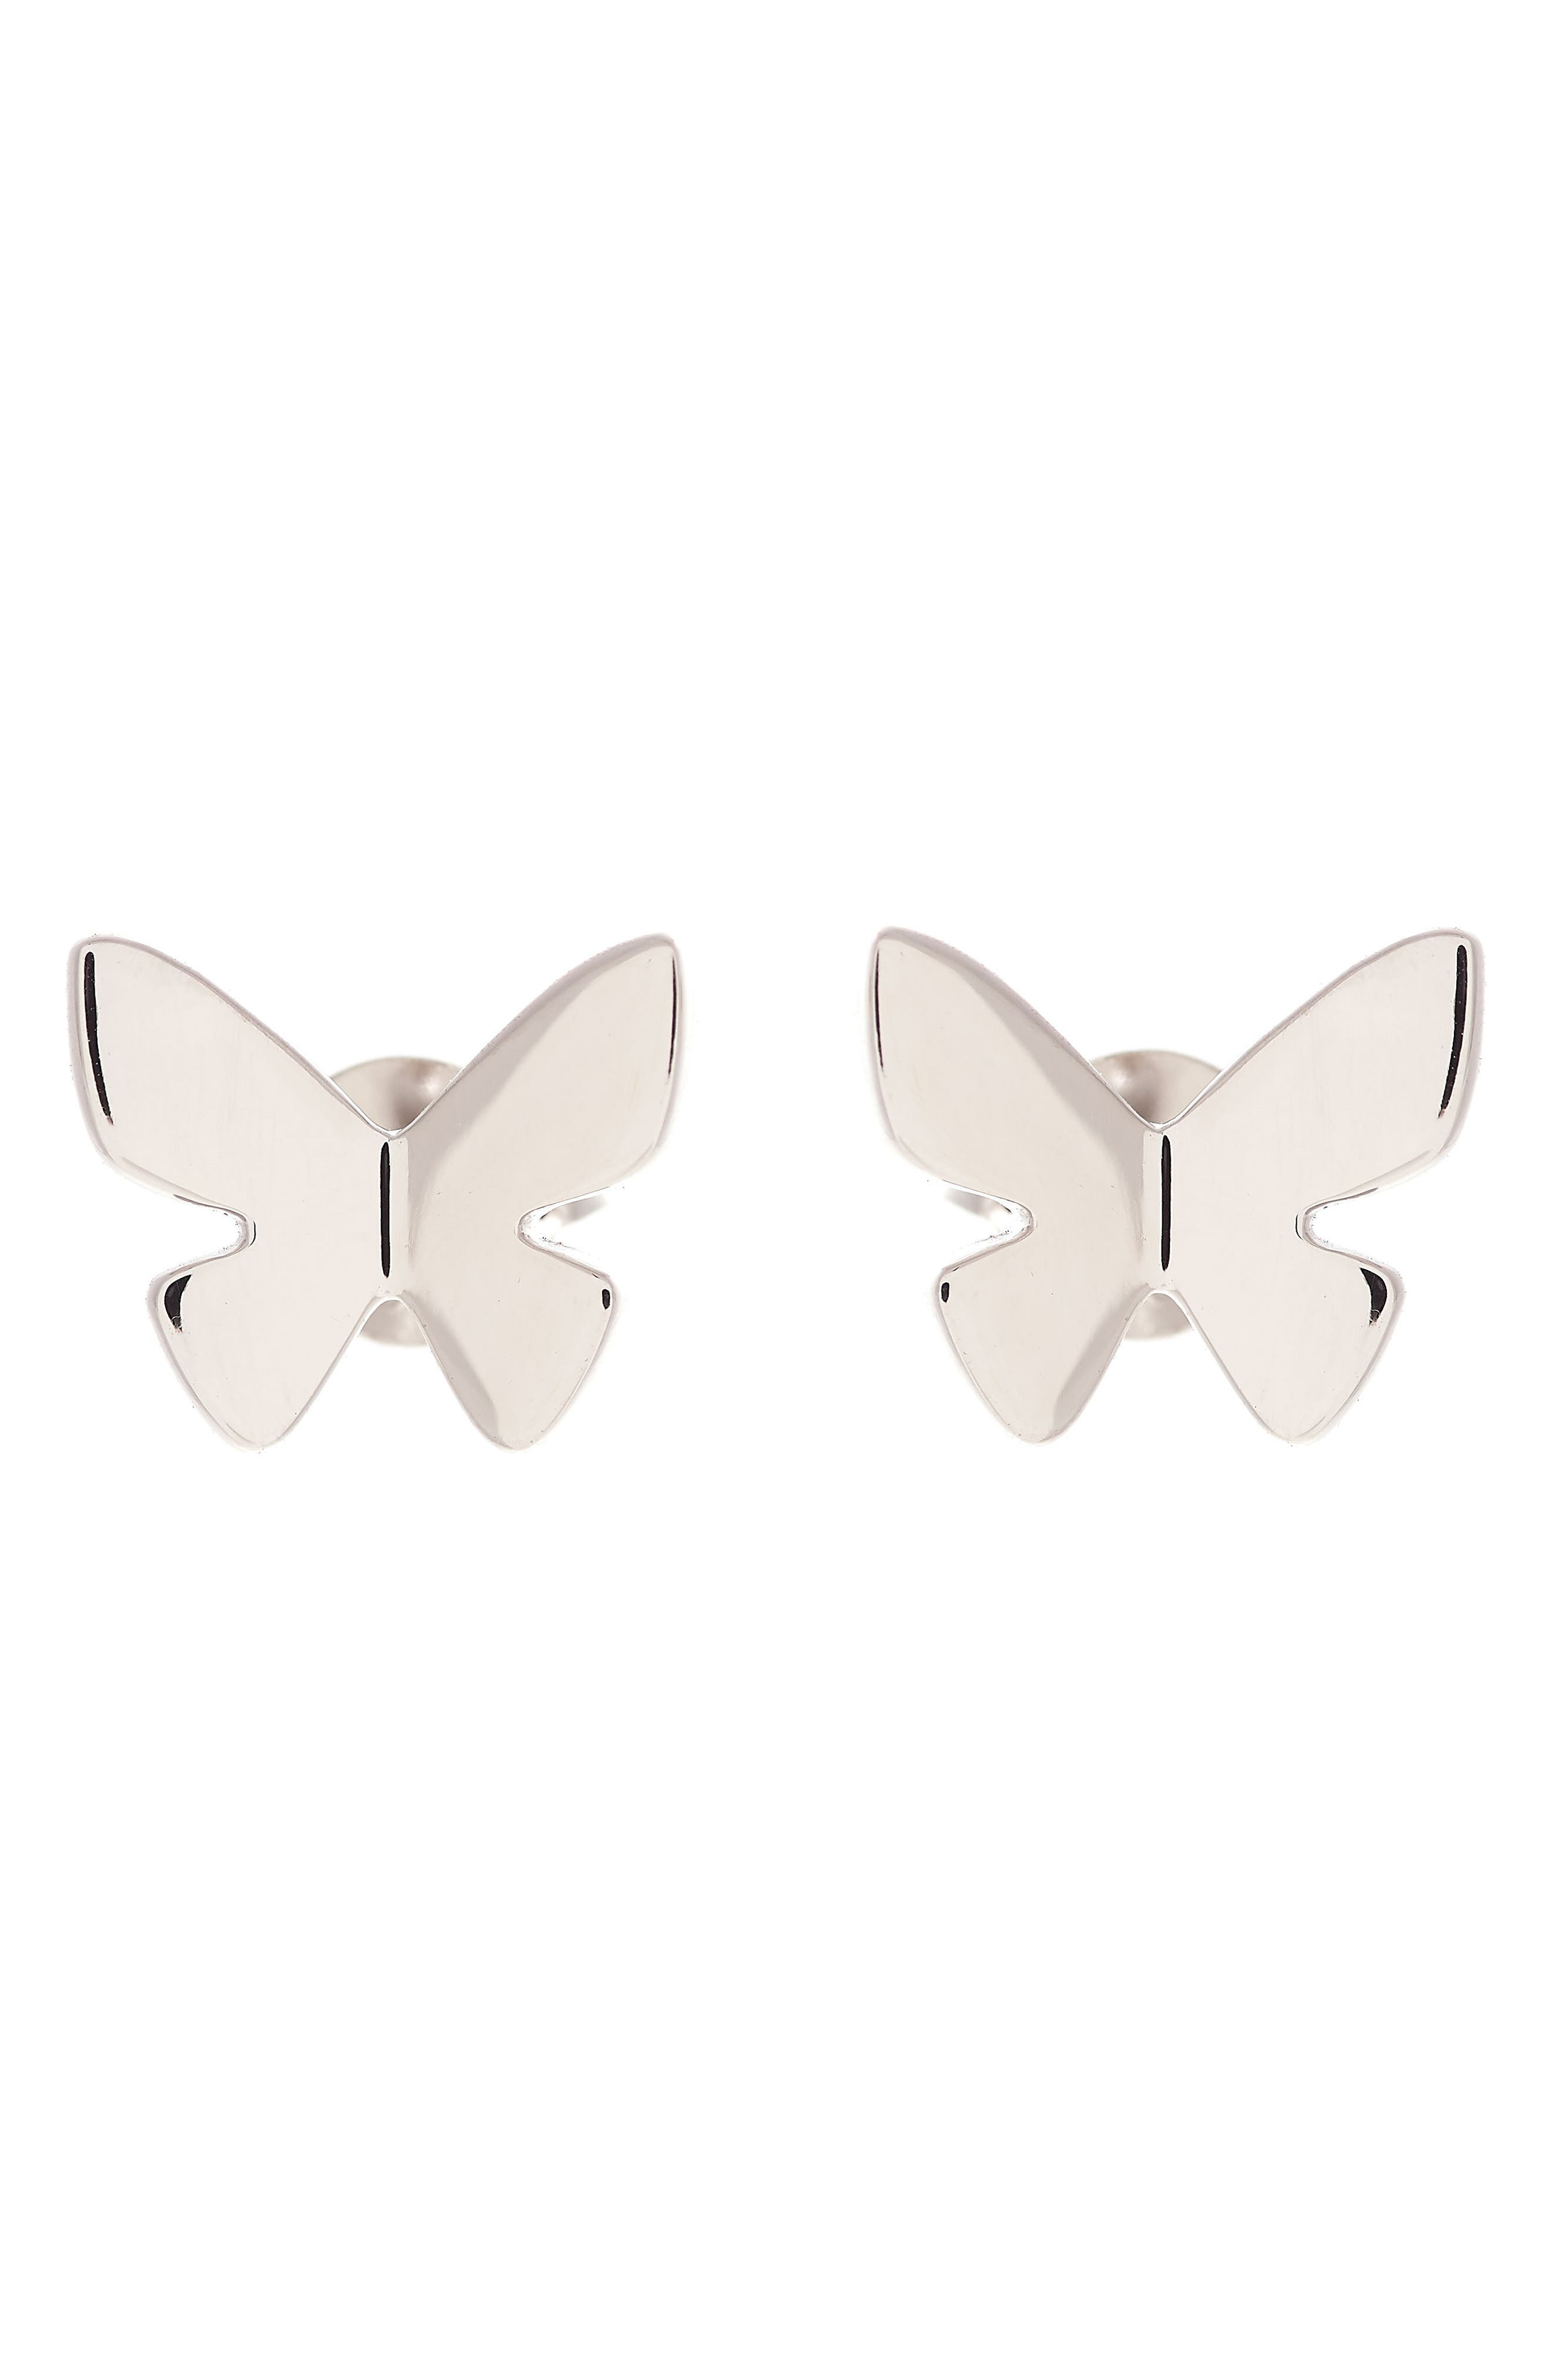 Social Butterfly Stud Earrings,                         Main,                         color, SILVER